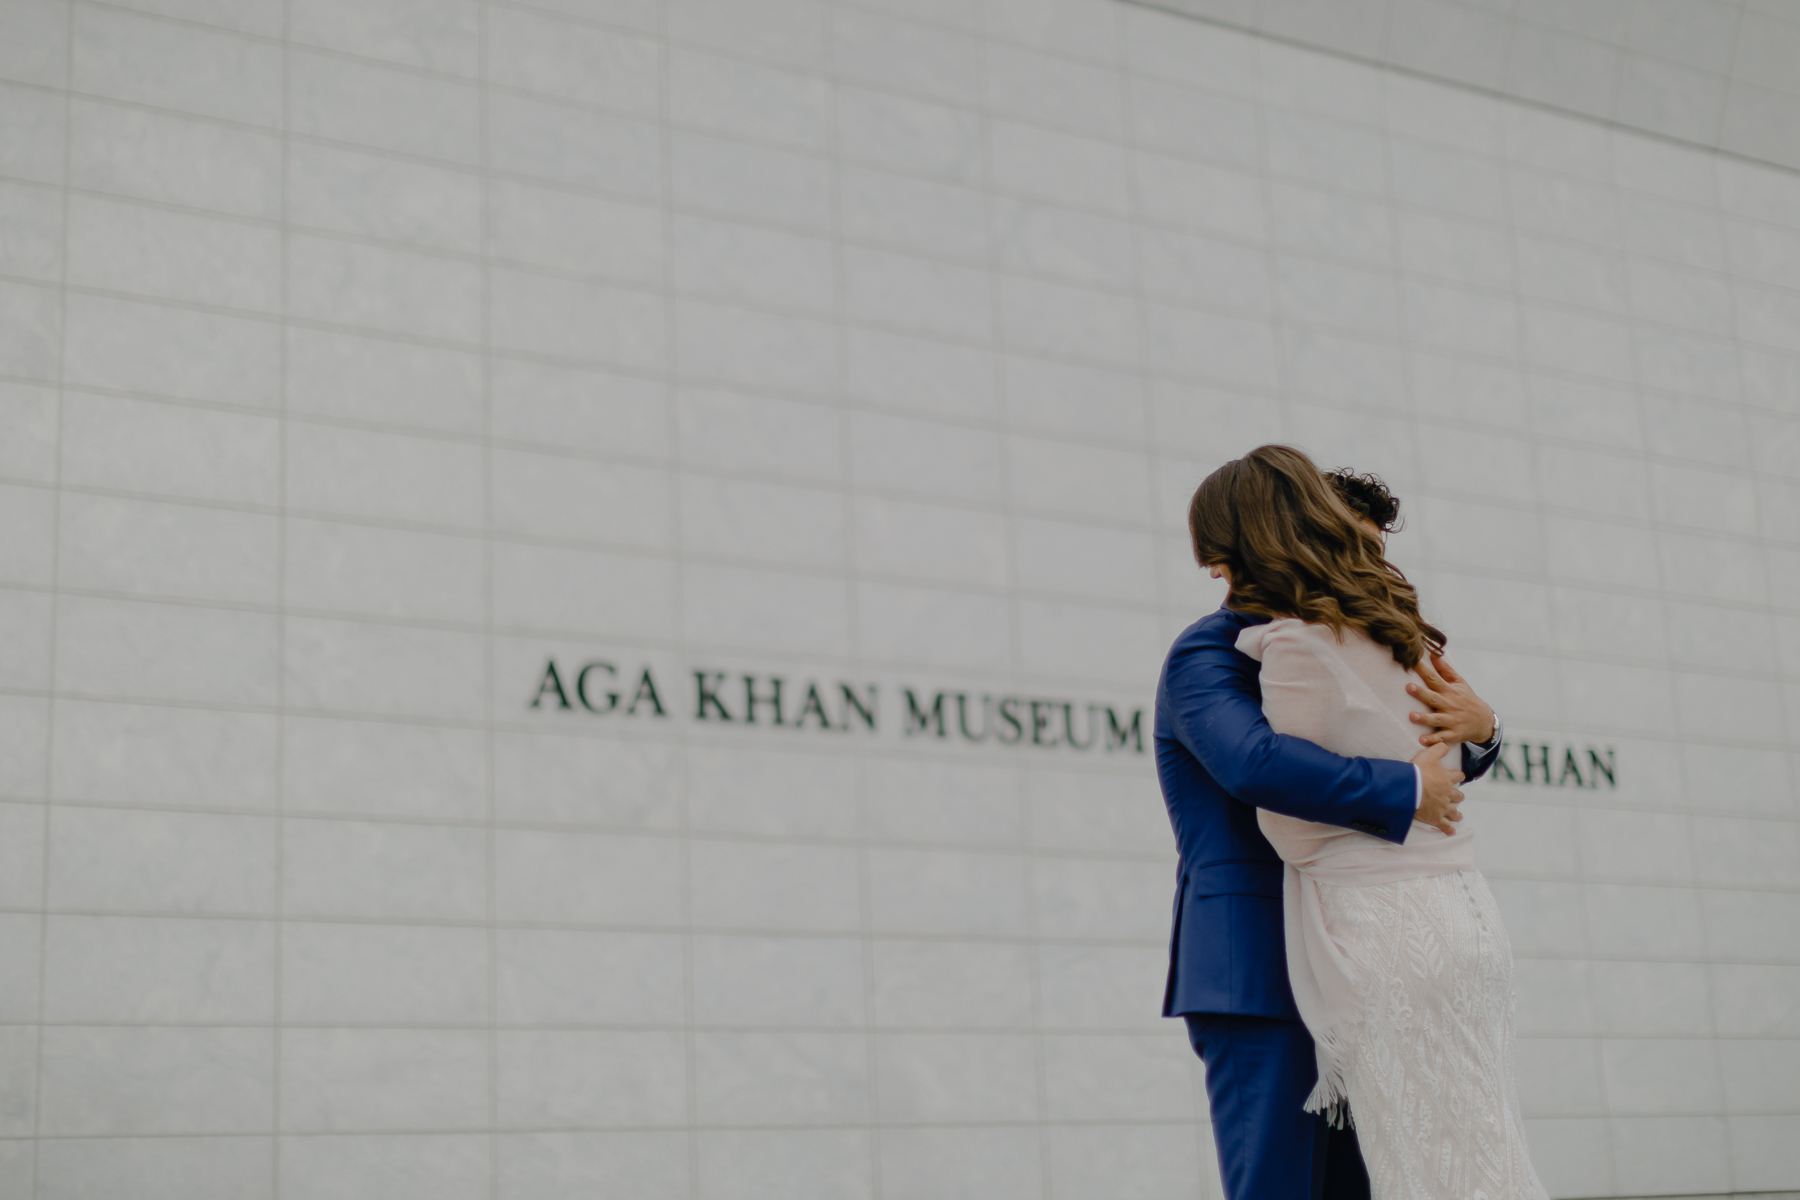 aga-khan-museum-wedding 0005.jpg